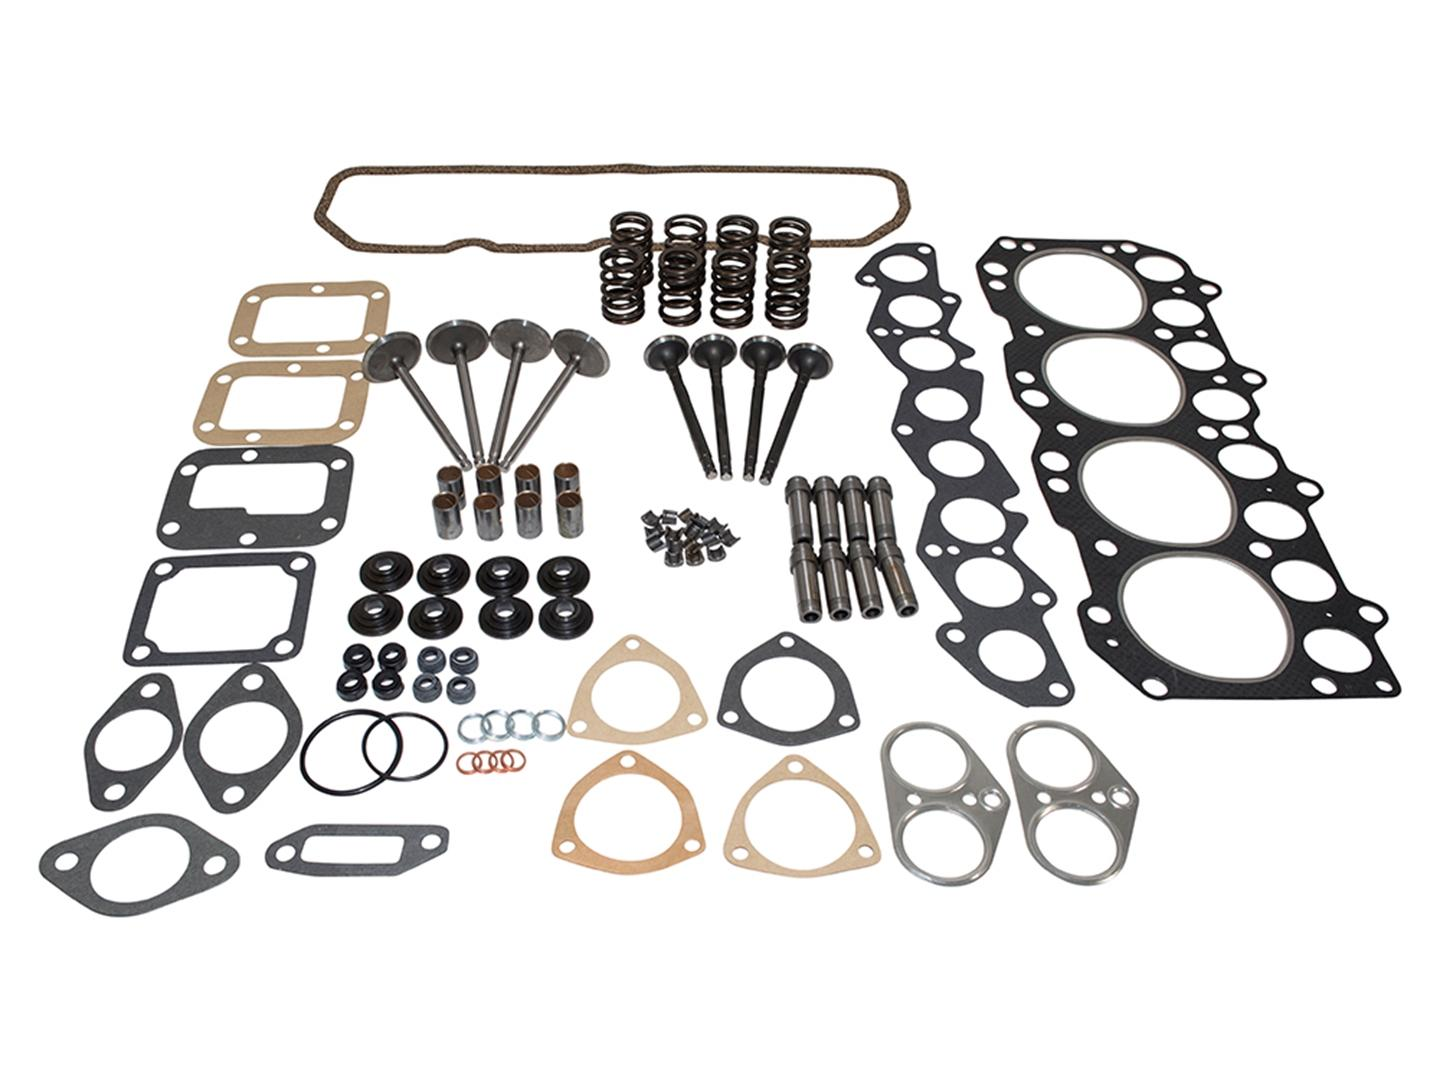 Cylinder Head Overhaul Kit - Series 2&3